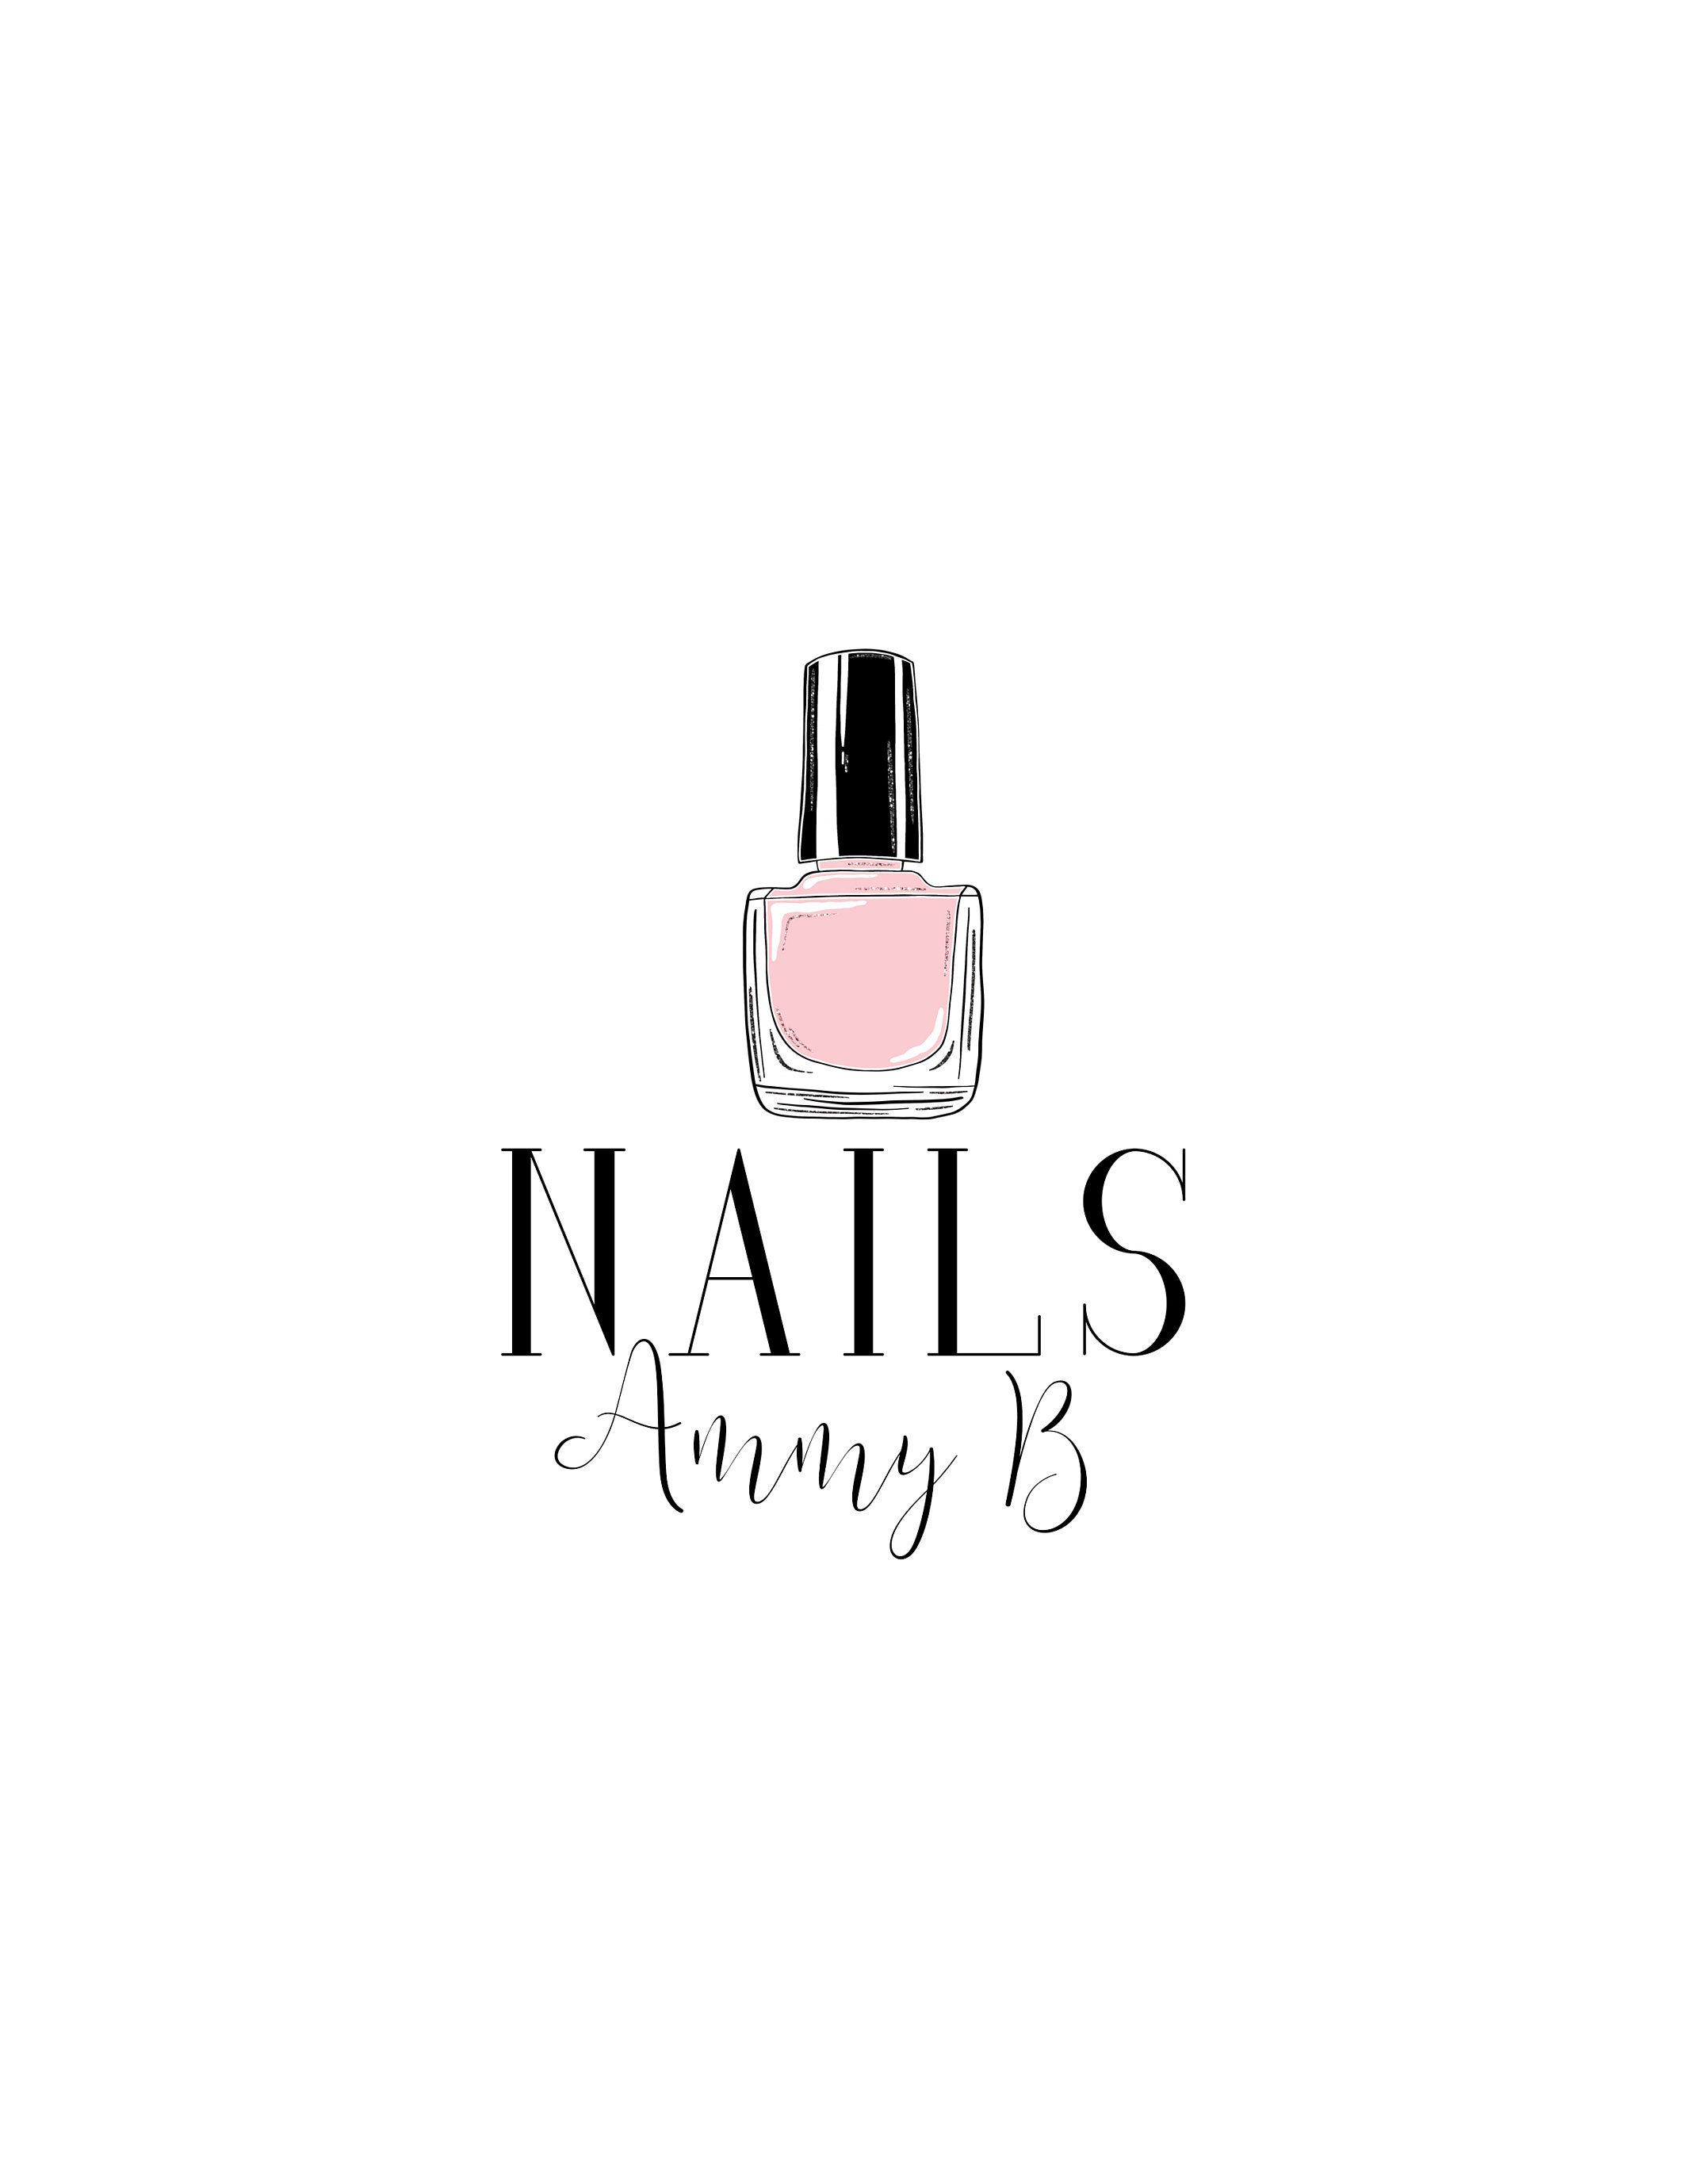 Nail Salon Logo, Nails Logo, Nail Technician Logo, Nail